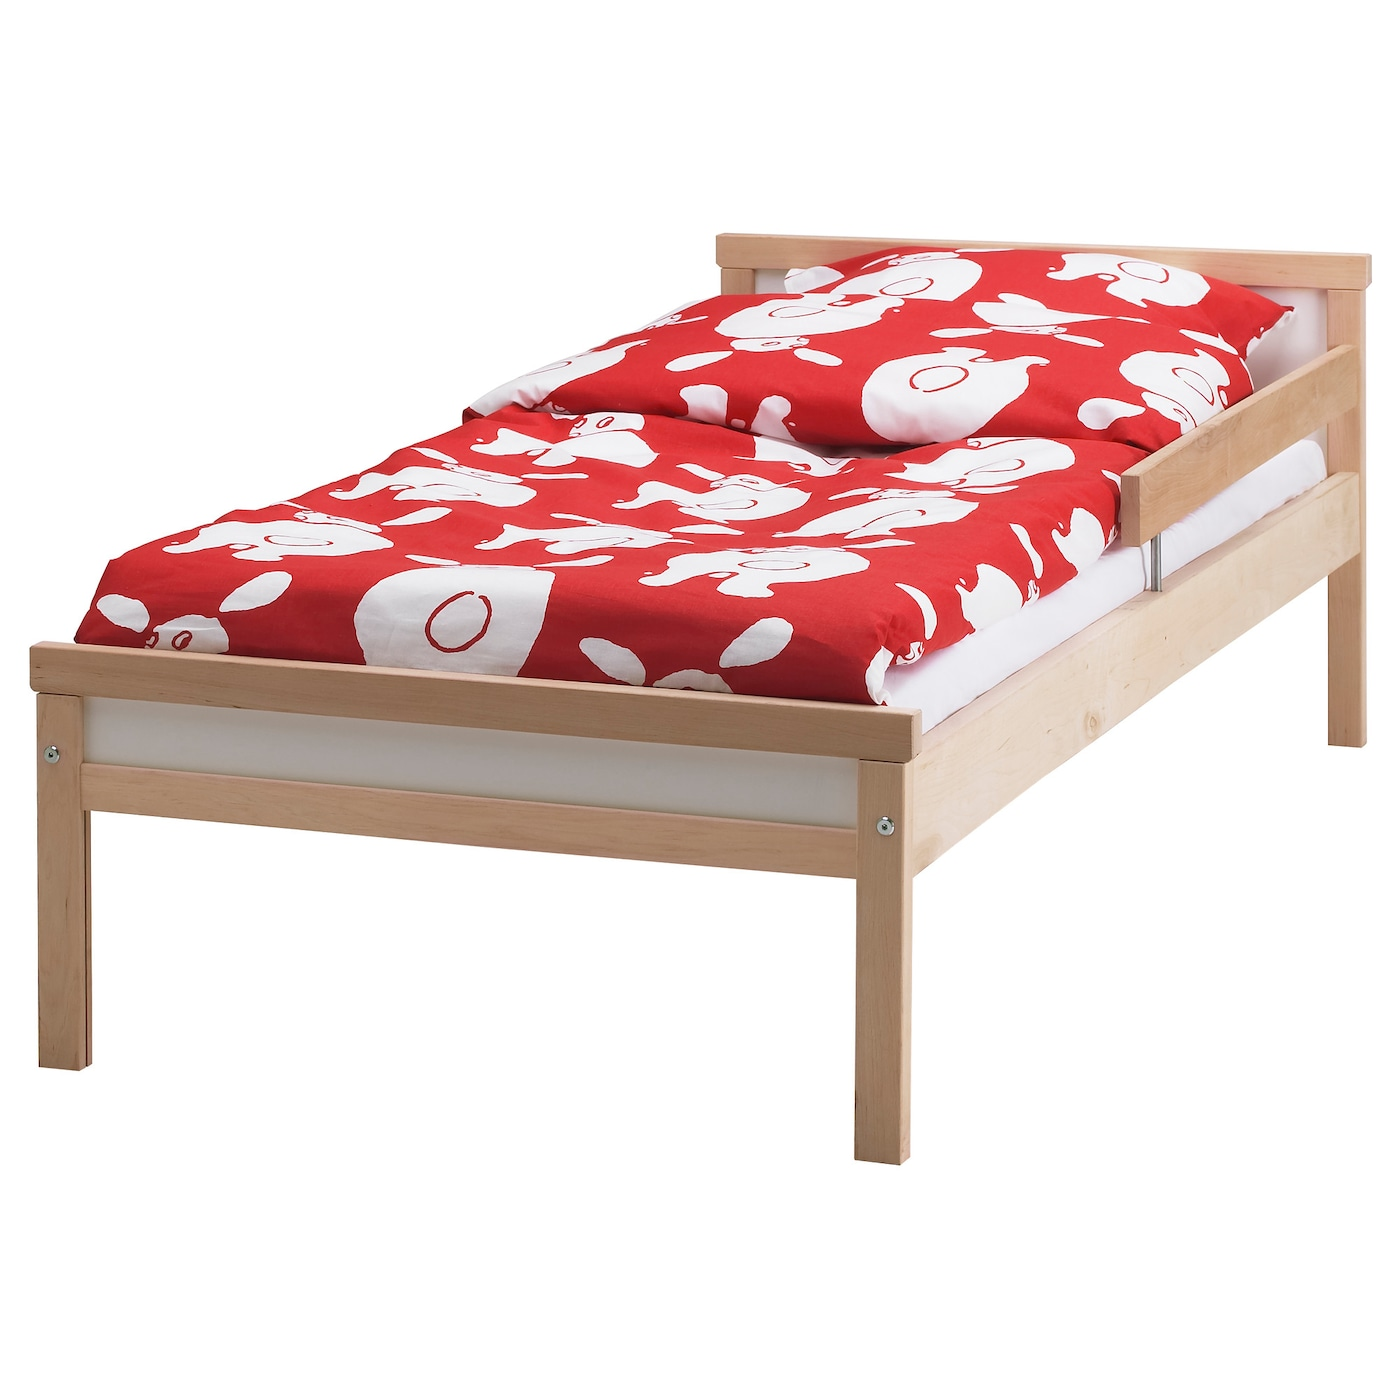 ikea childrens beds sniglar bed frame with slatted bed base beech 70x160 cm ikea 30202